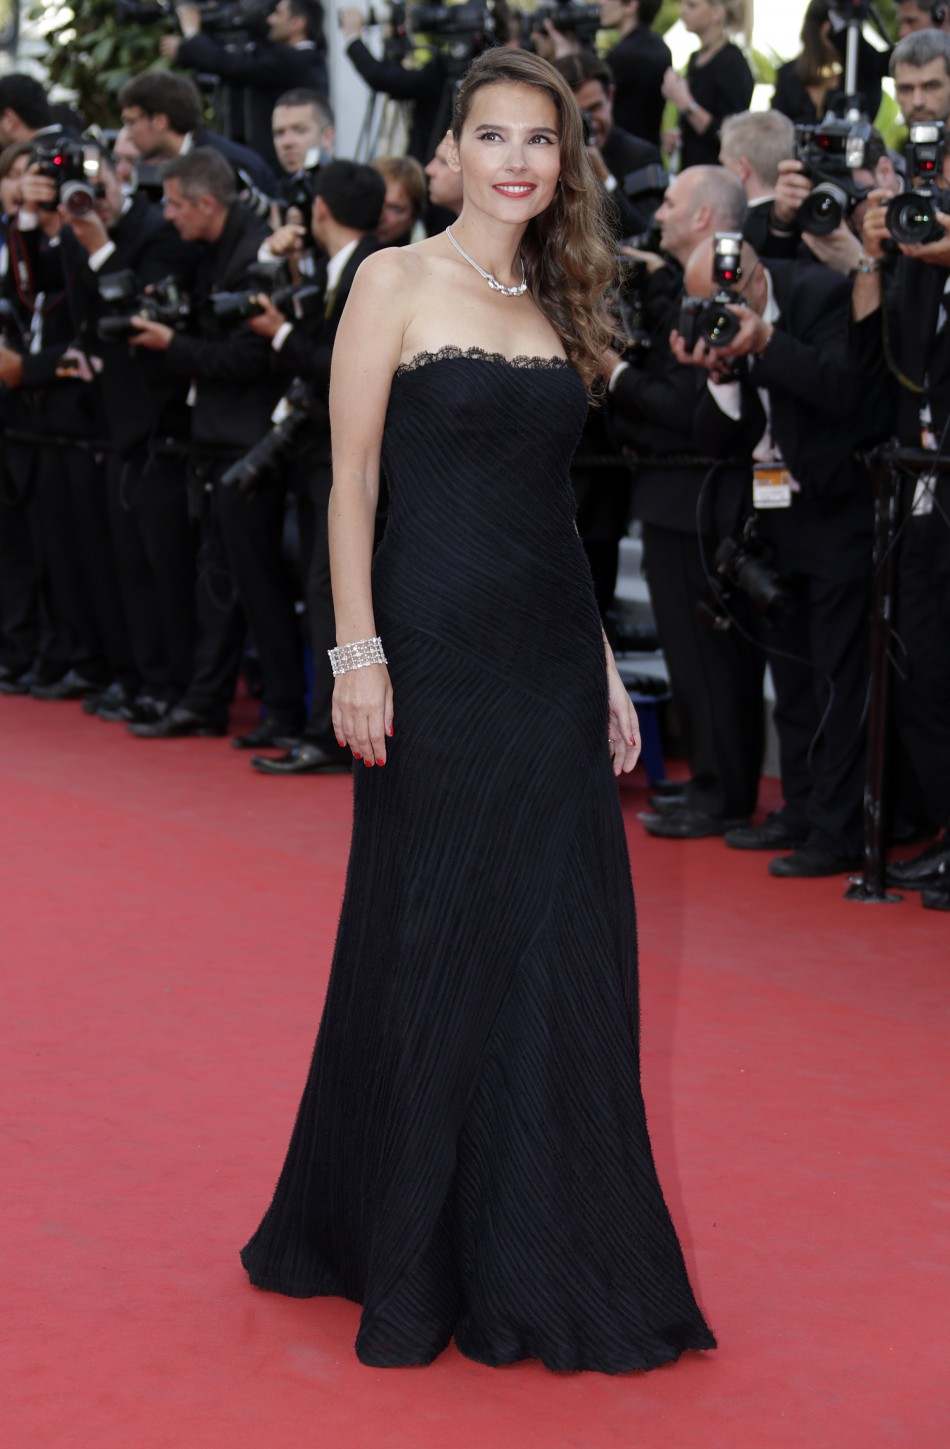 Actress Ledoyen arrives on the red carpet for the screeing of the film De rouille et d'os at the 65th Cannes Film Festival